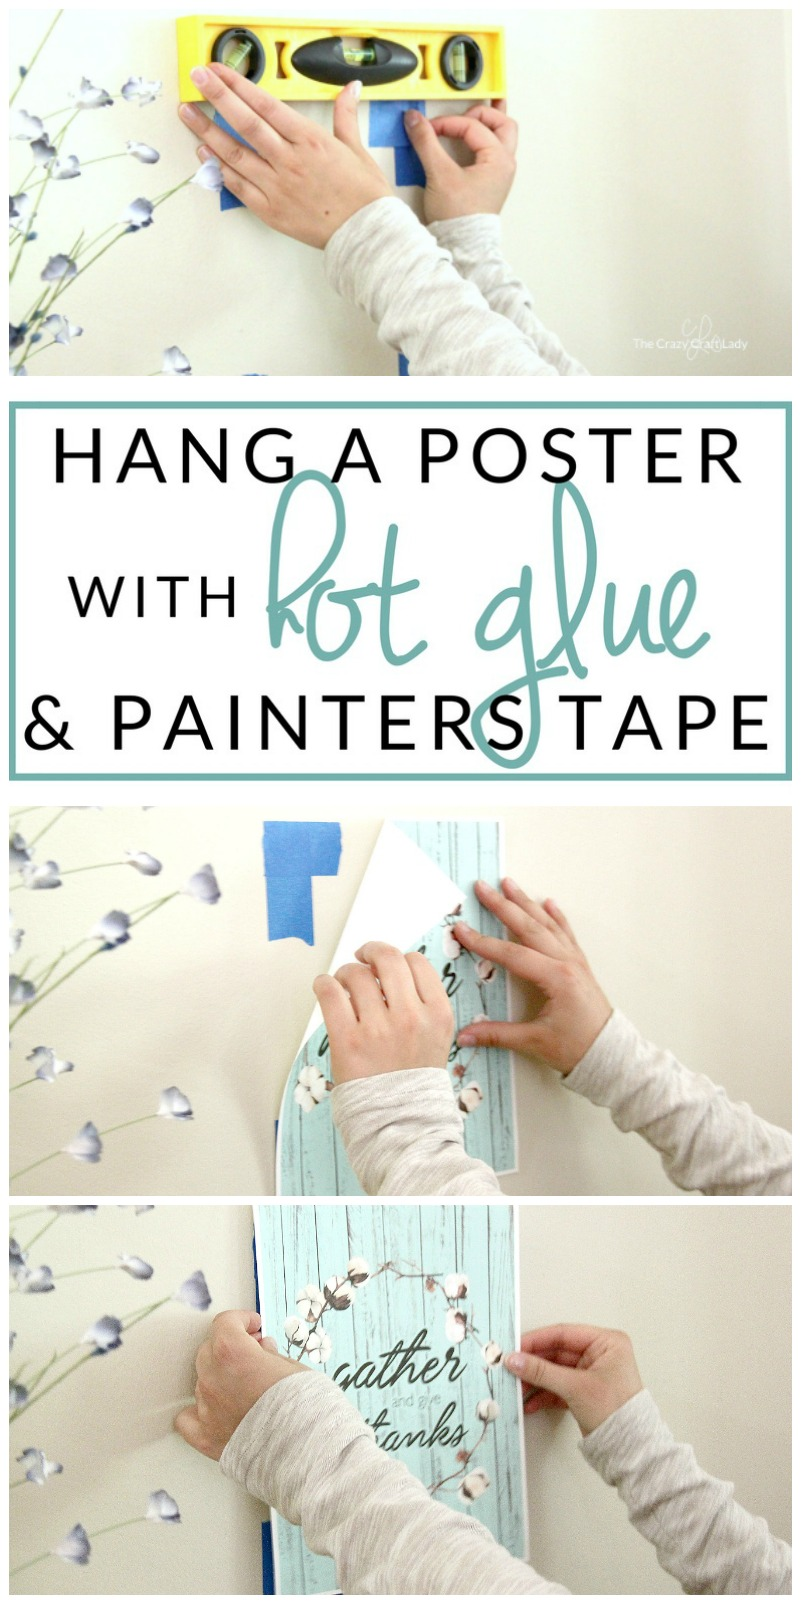 Learn how to hang a poster without damaging your walls - using painters tape and hot glue. This is such a genius damage-free wall decorating technique that is perfect for dorm rooms, apartments, and renters.